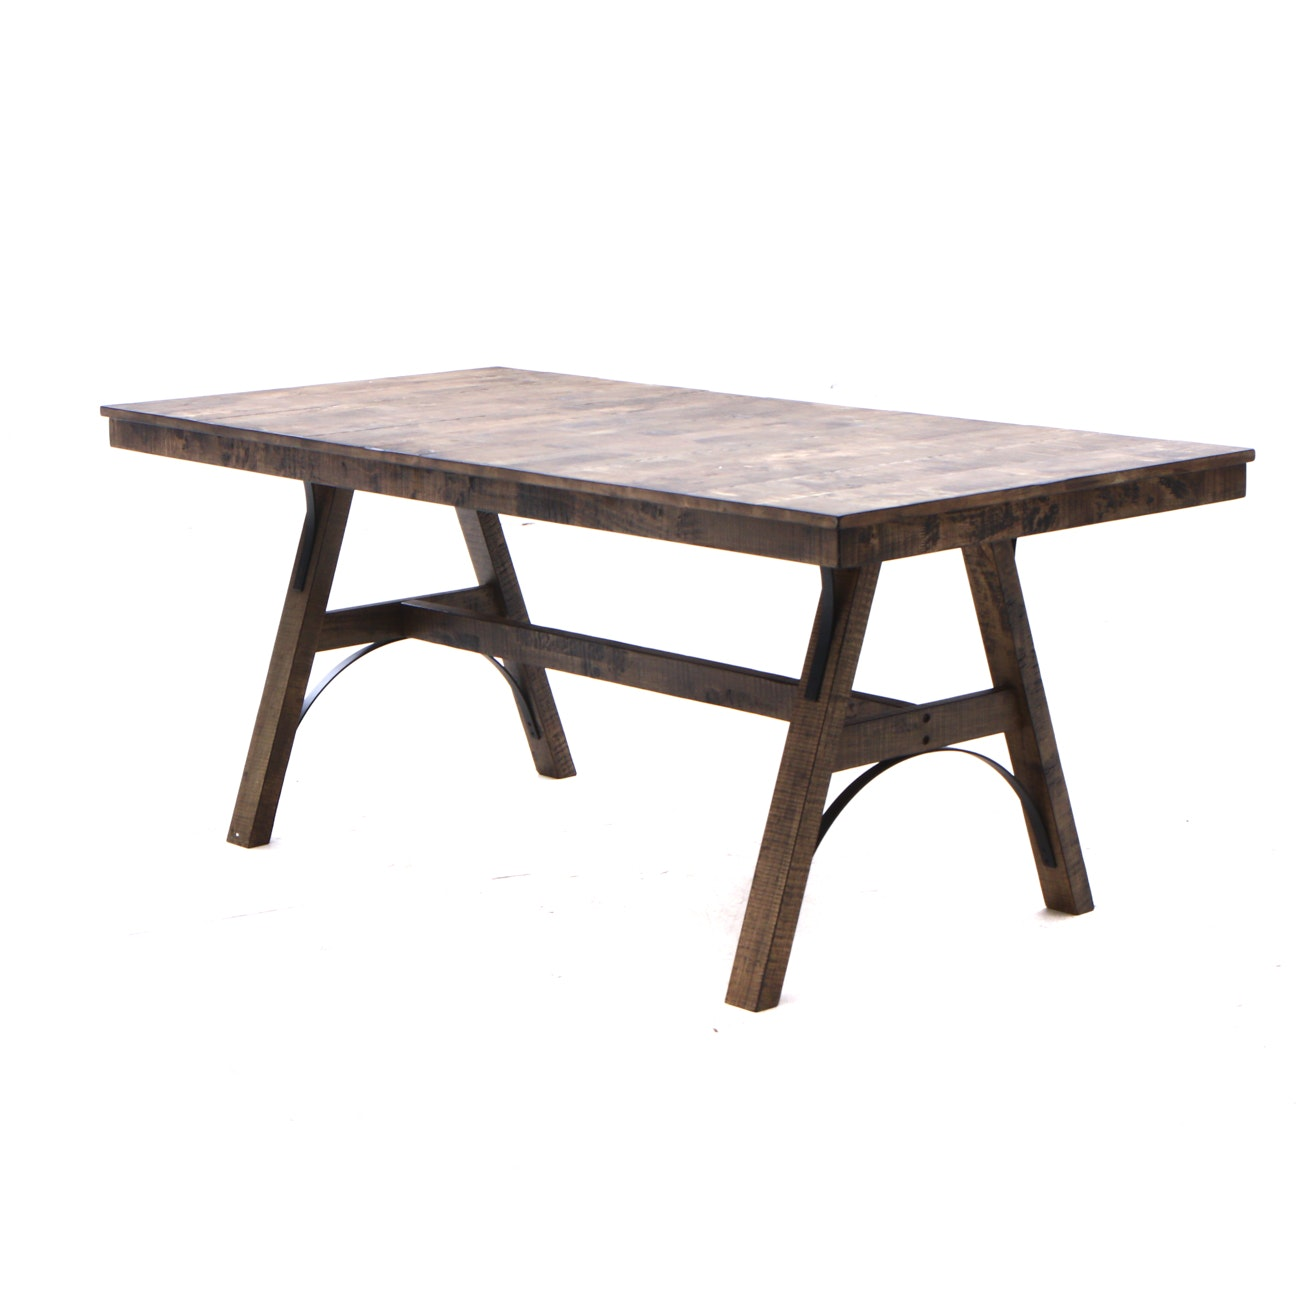 Contemporary Arts and Crafts Style Dining Table